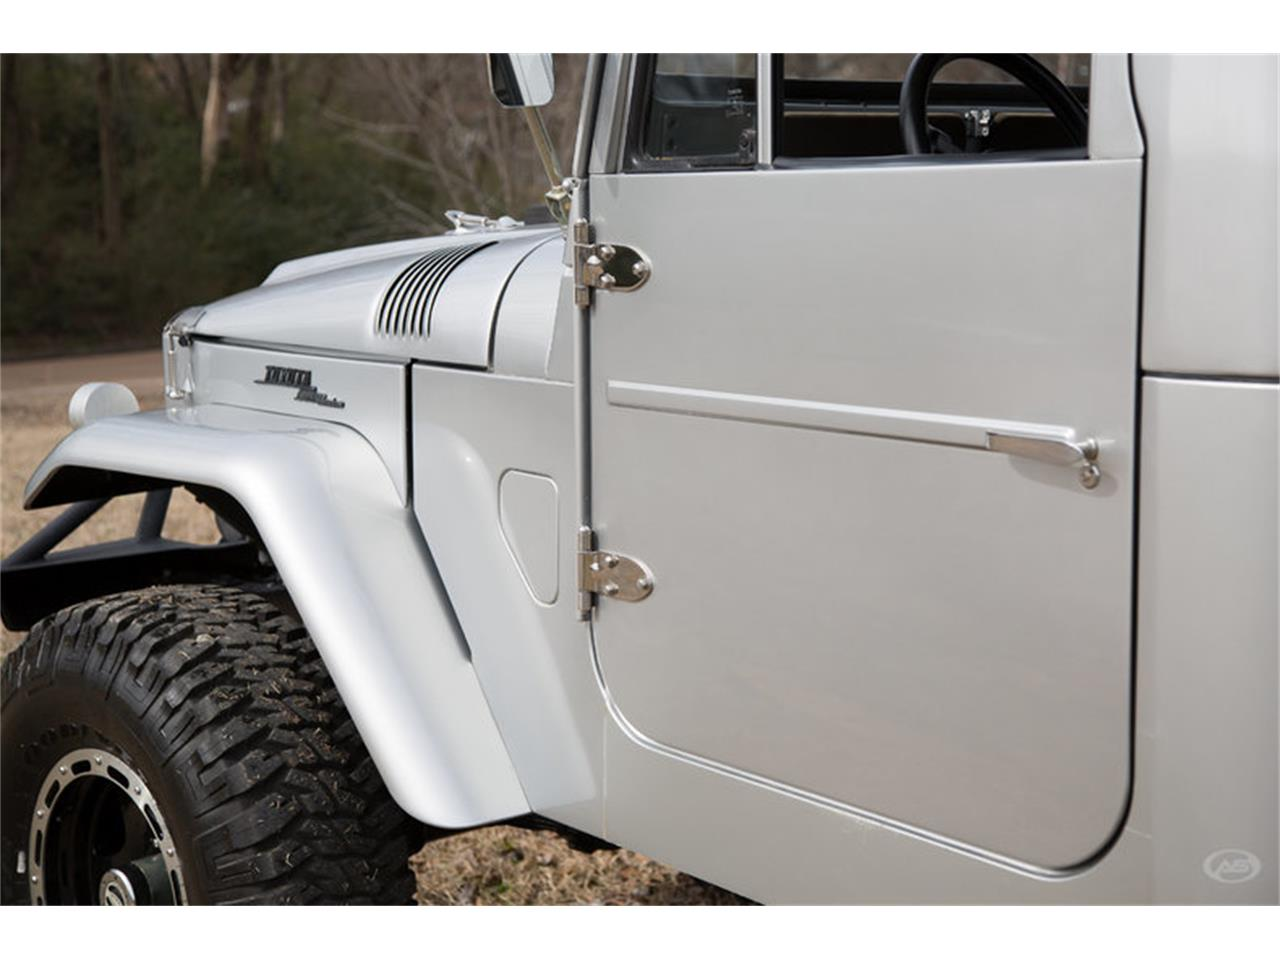 Large Picture of Classic 1965 Toyota Land Cruiser FJ45 Pickup located in Collierville Tennessee - $86,900.00 - M389